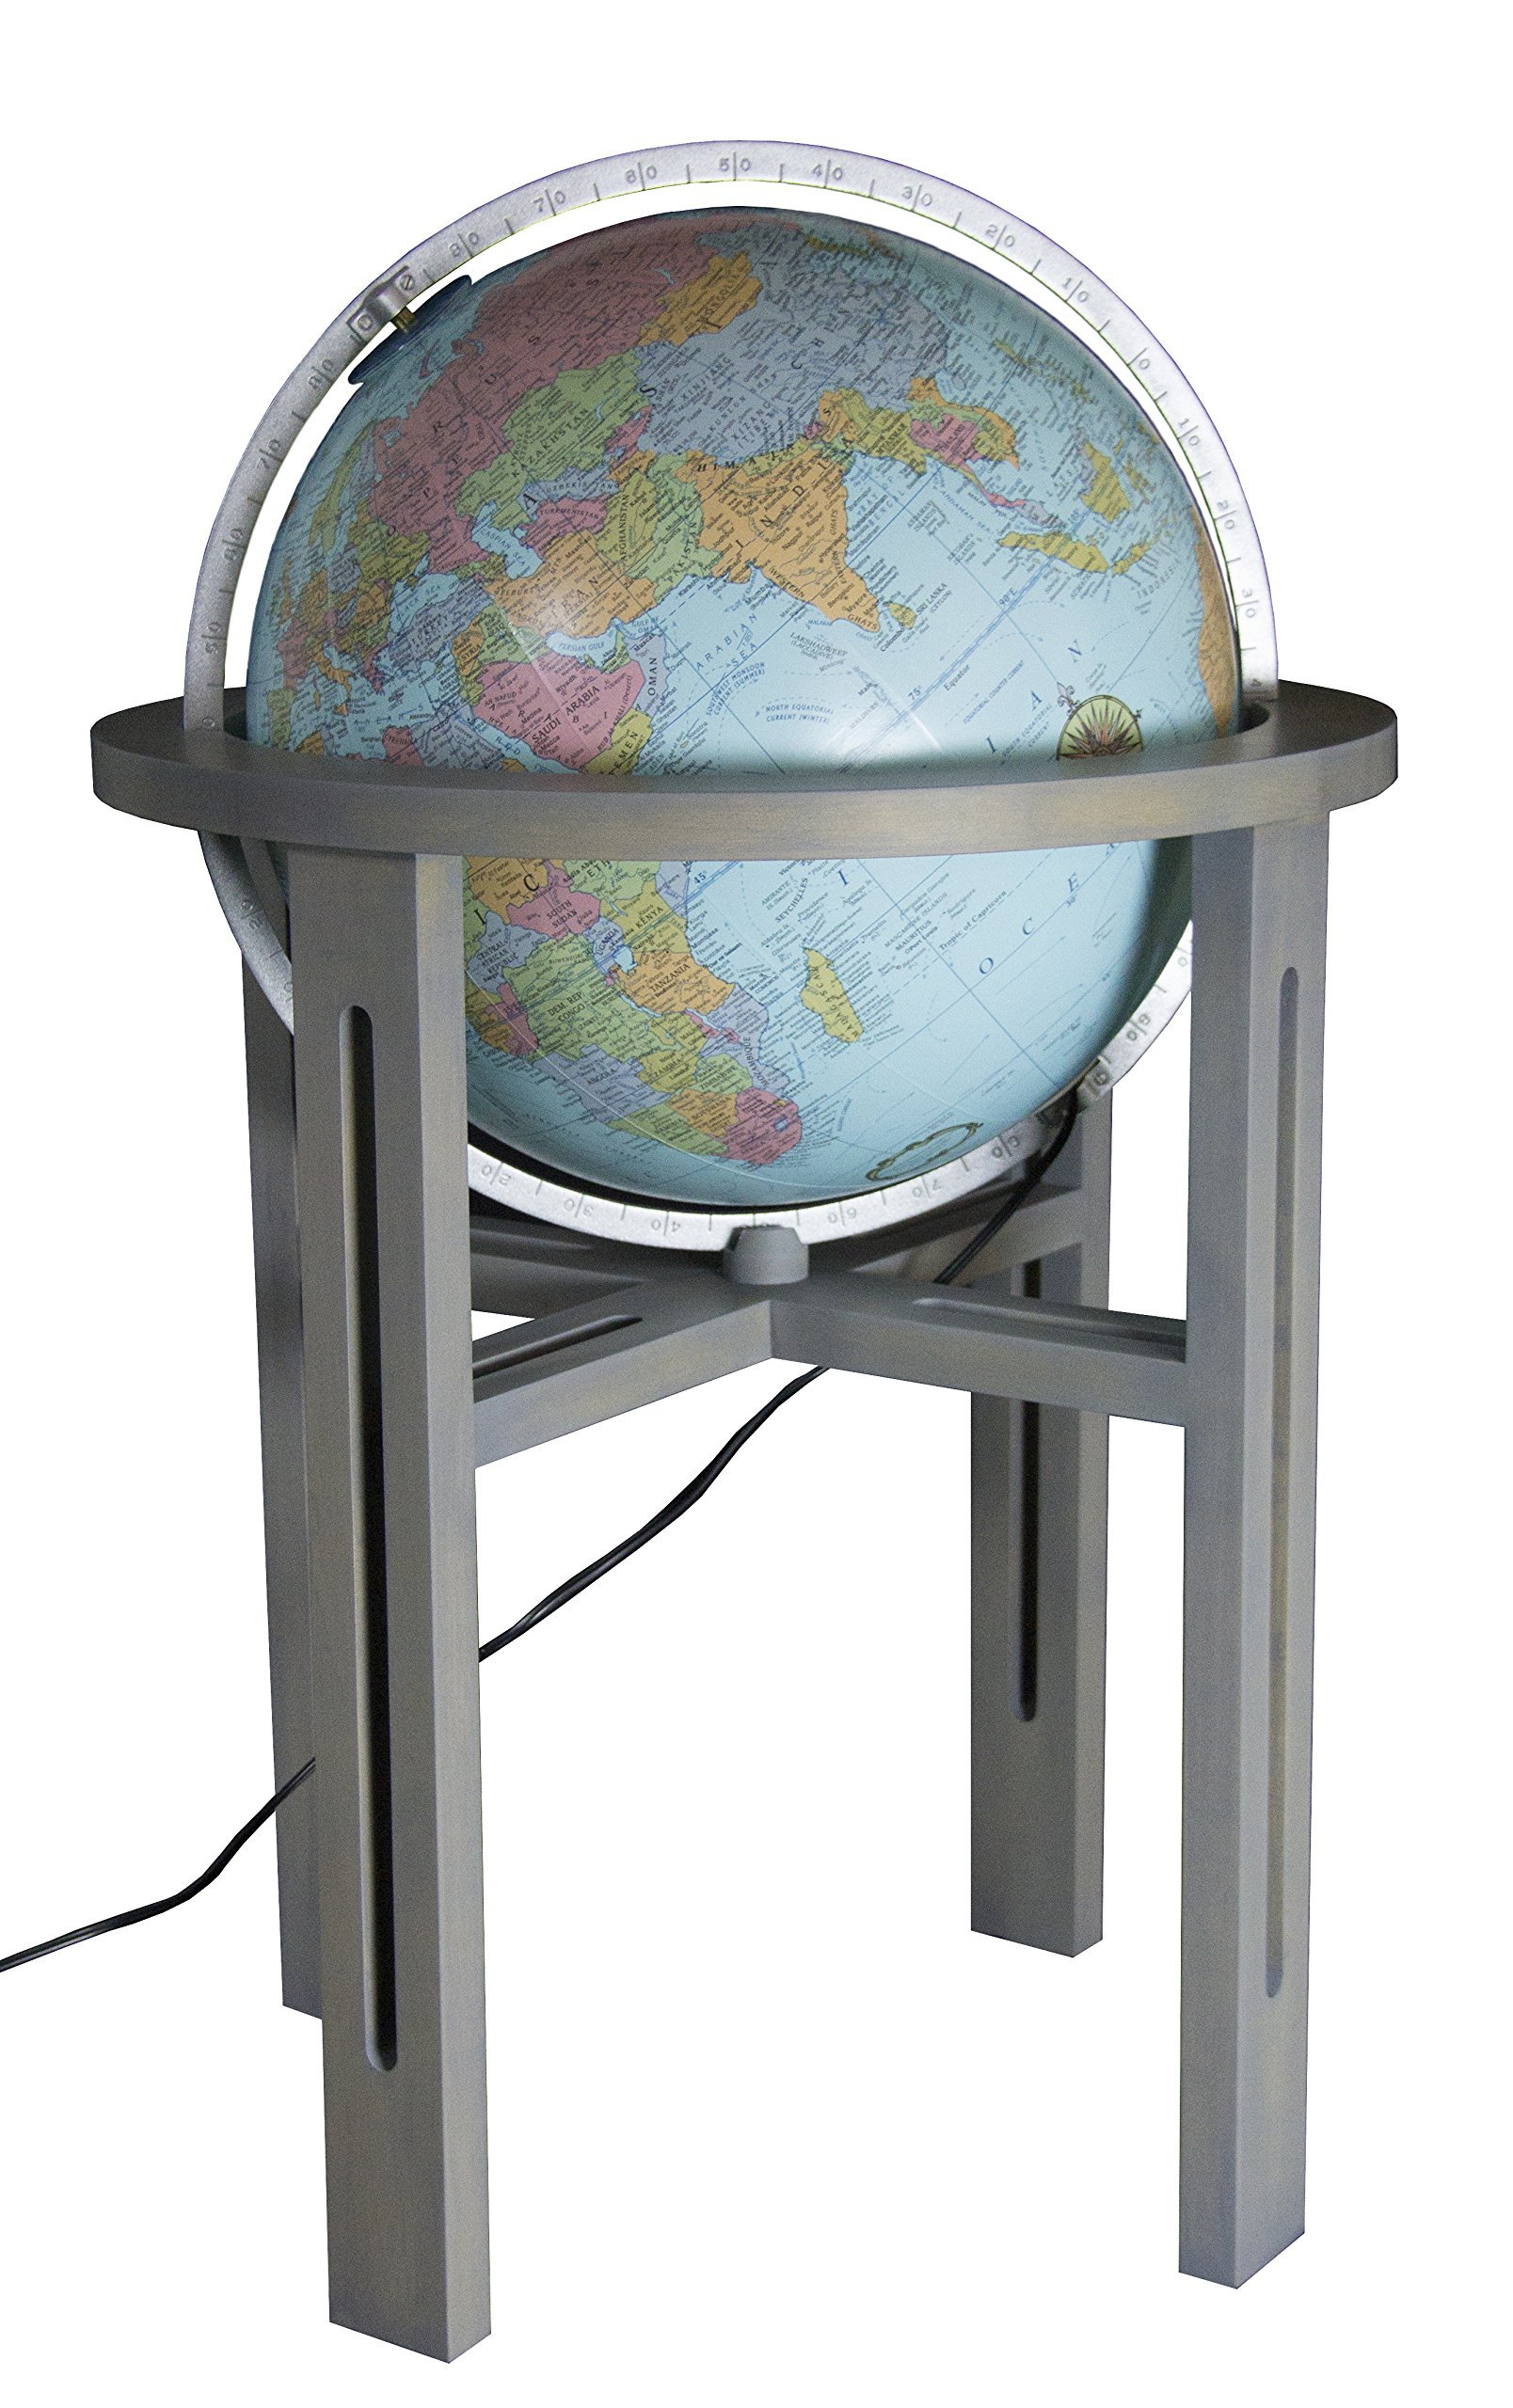 Replogle Mission Hand Covered Blue Illuminated Heirloom globe, Silver Ring and Maple Wood Stand with Grey finish, Floor Model Globe (20''/50cm diameter)